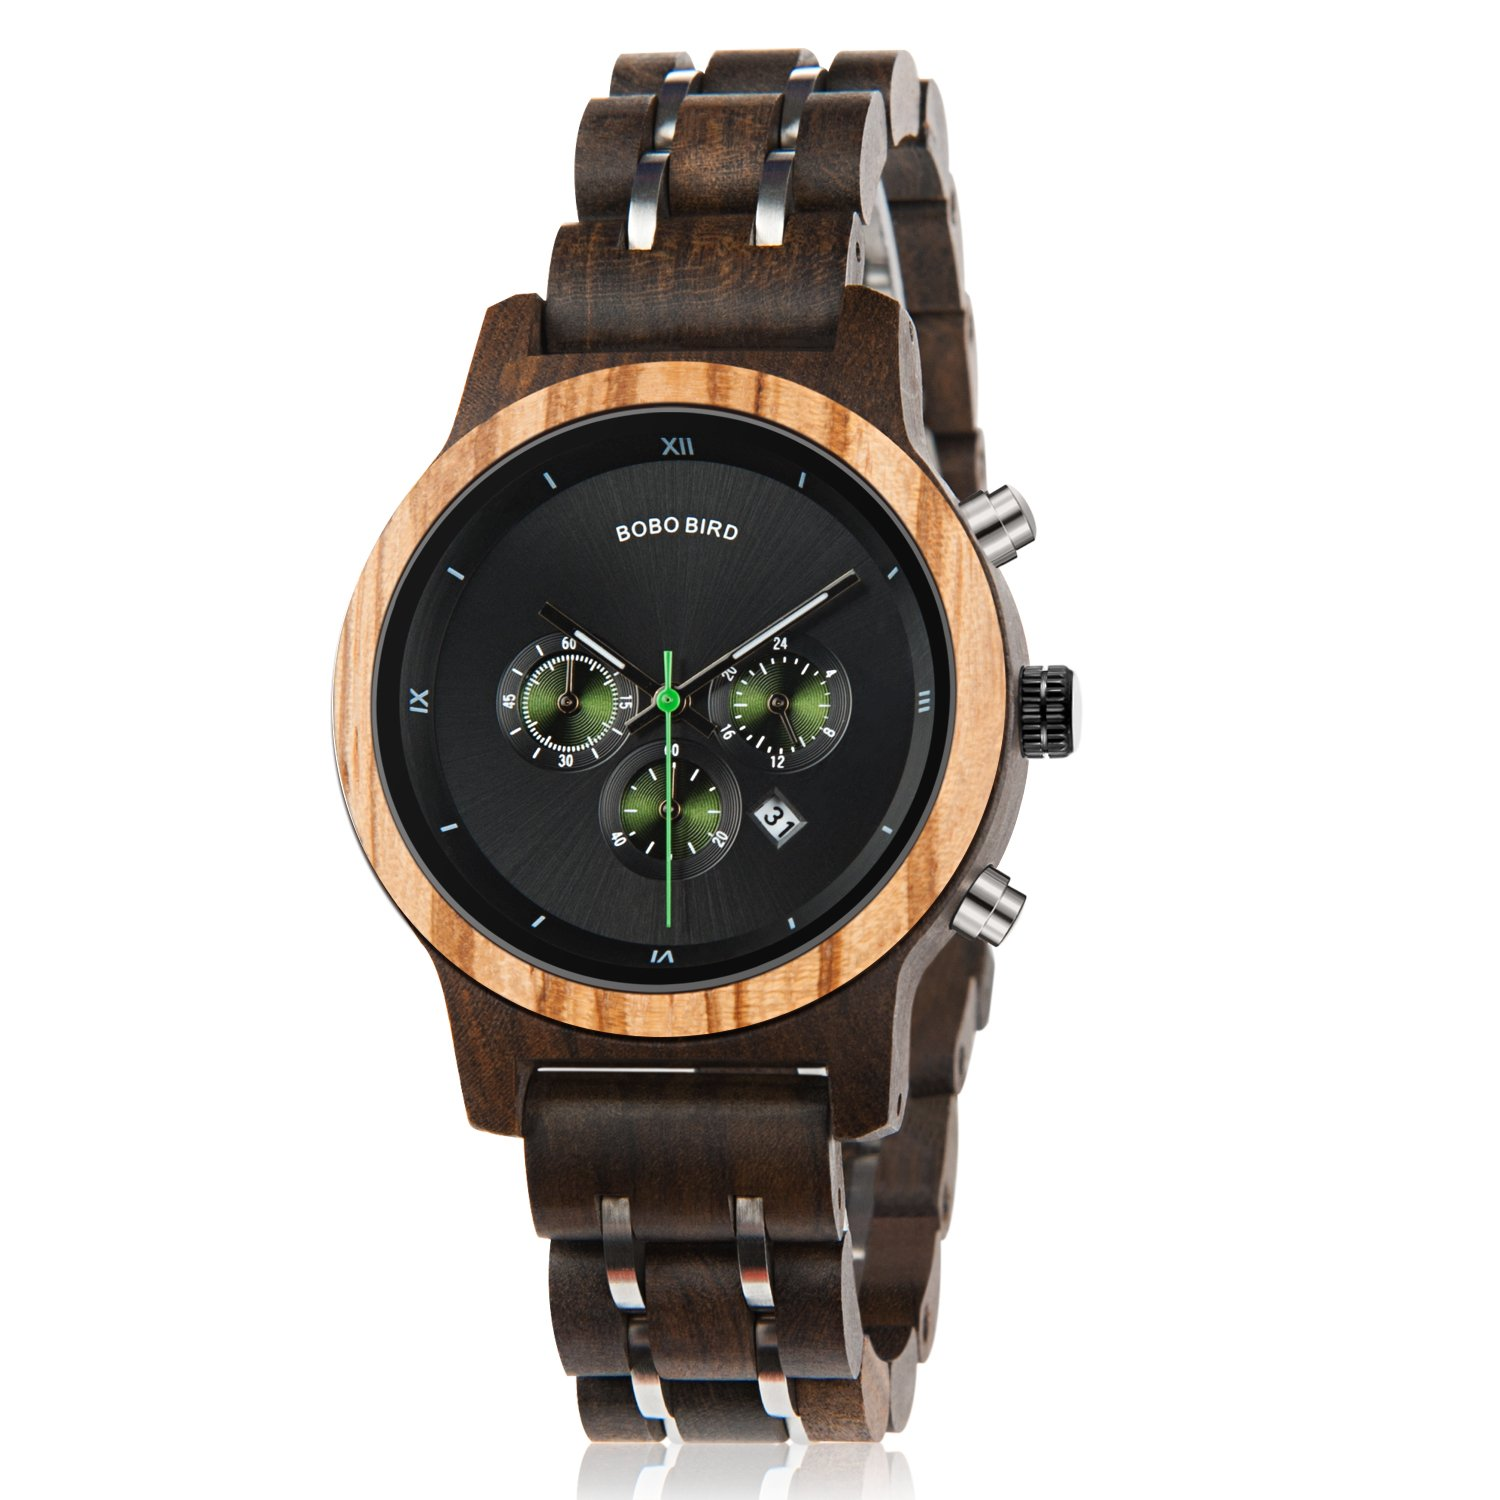 Women Wooden Watches Wood & Metal Strap Chronograph Date Display Luxury Quartz Watch Female Casual Wristwatches